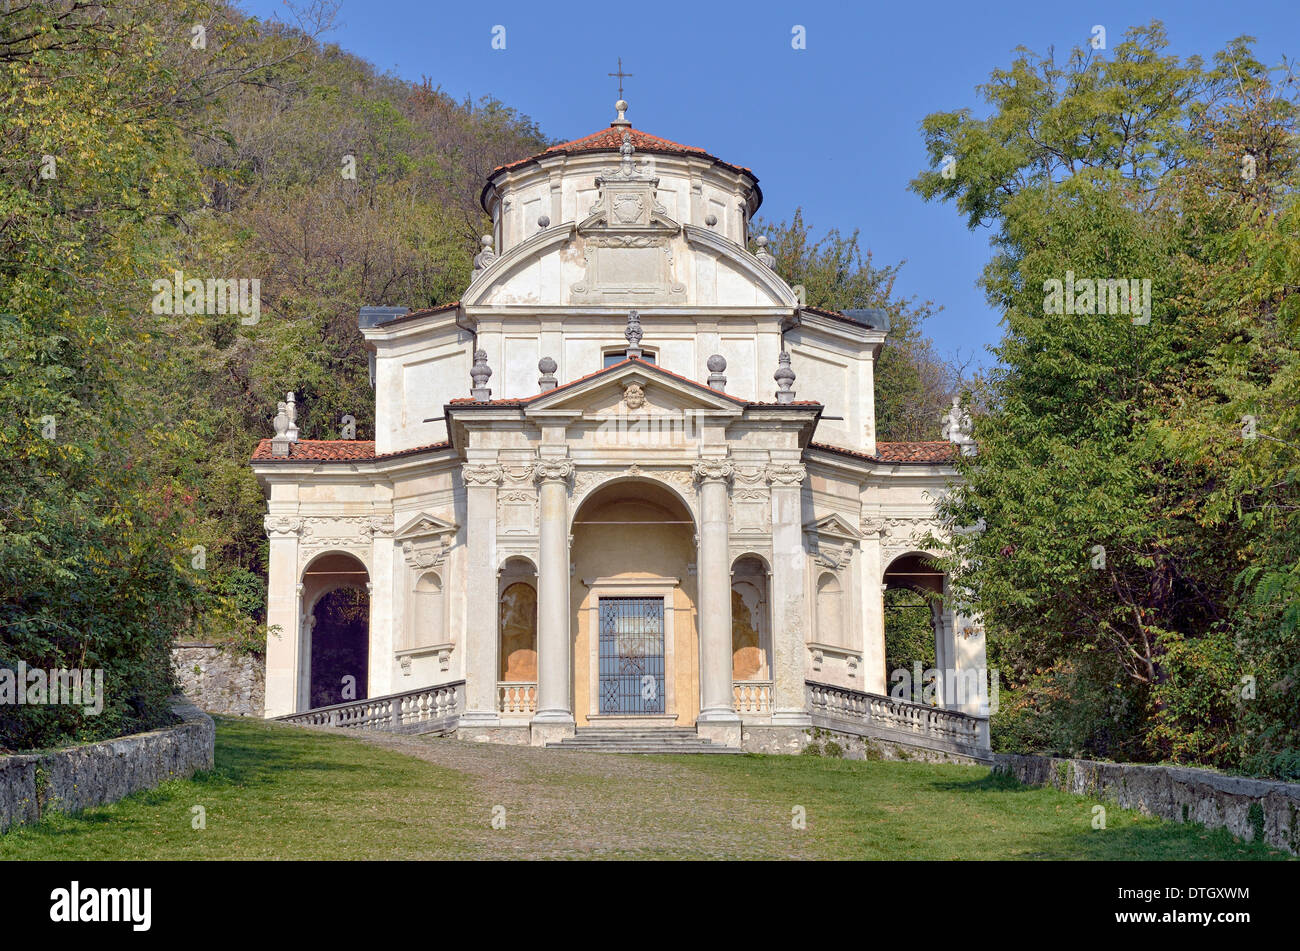 Chapel V, historic pilgrimage route to the Sanctuary of Santa Maria del Monte on the Sacro Monte di Varese or Sacred Mount of - Stock Image